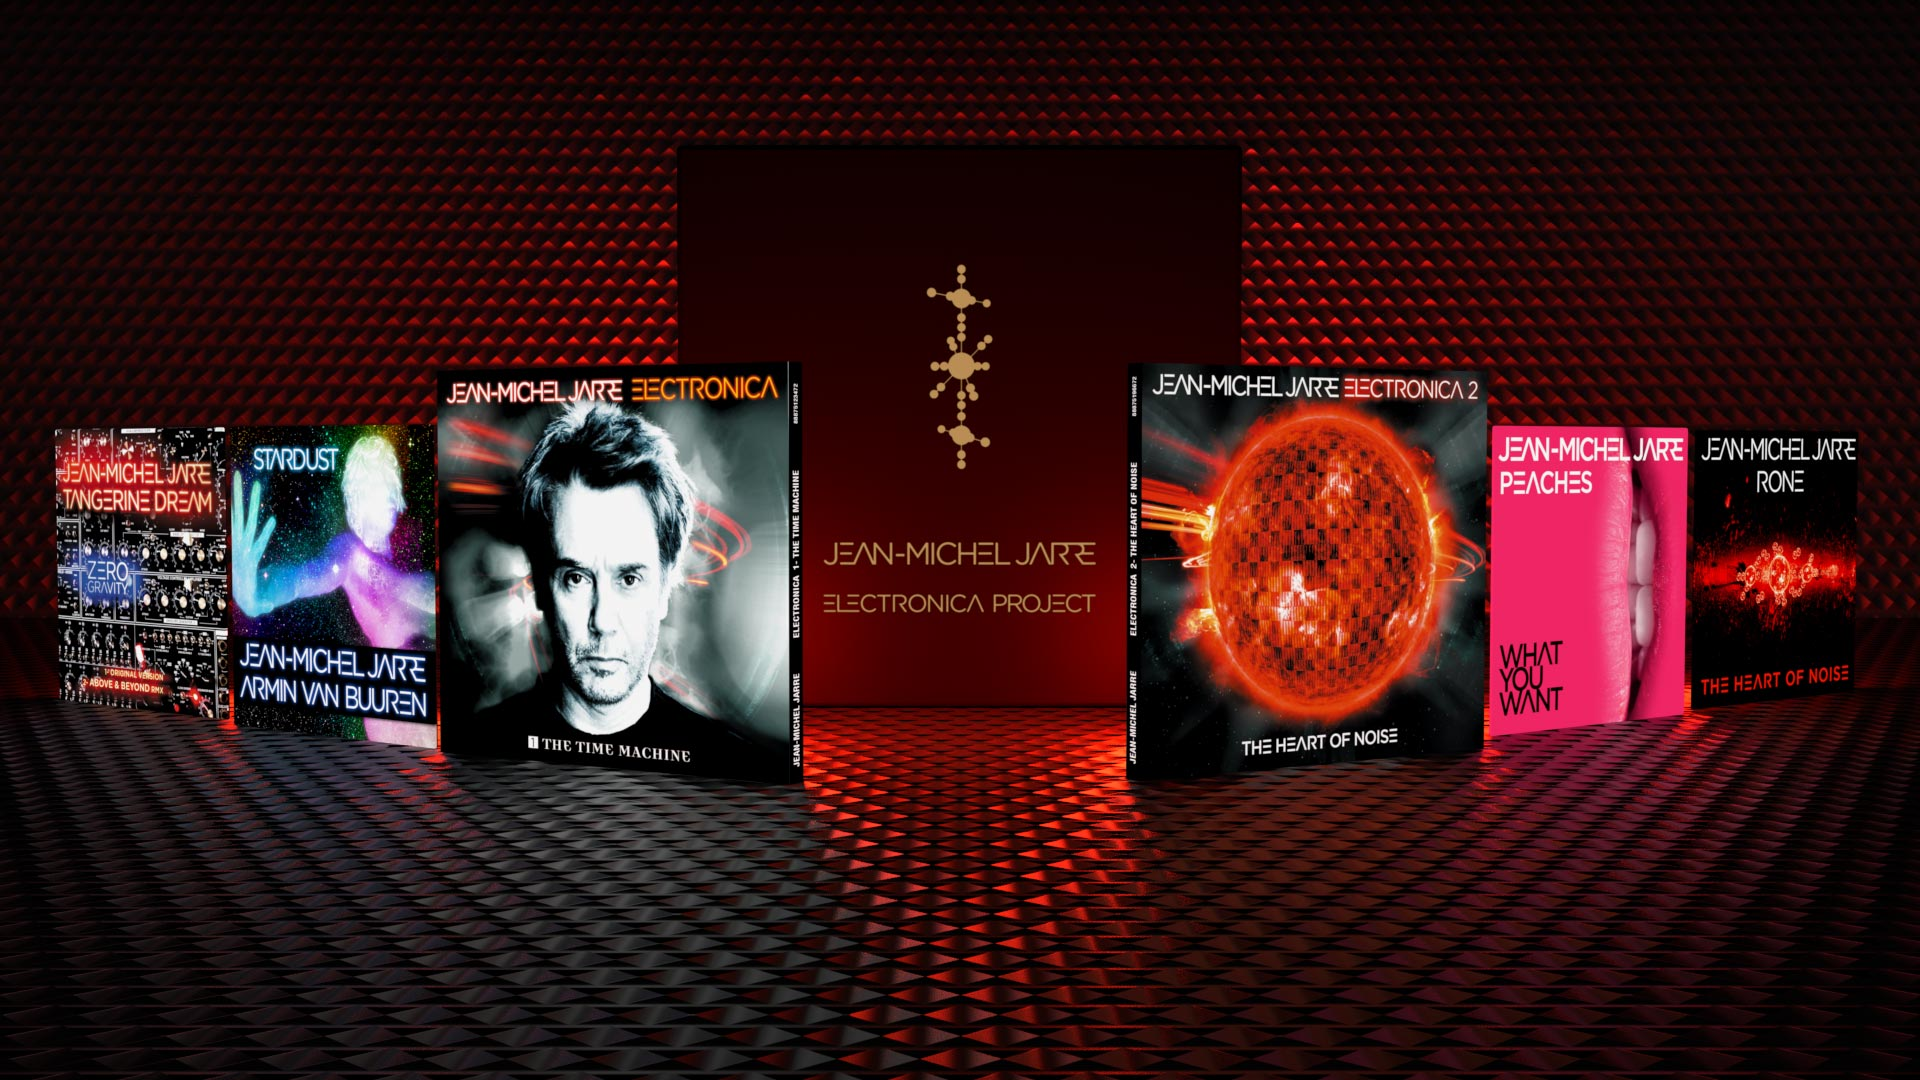 Graphic Design of Jean-Michel Jarre's Electronica Project parts, including The Time Machine and The Heart of Noise albums, Deluxe Boxset, Fanbox, Singles.